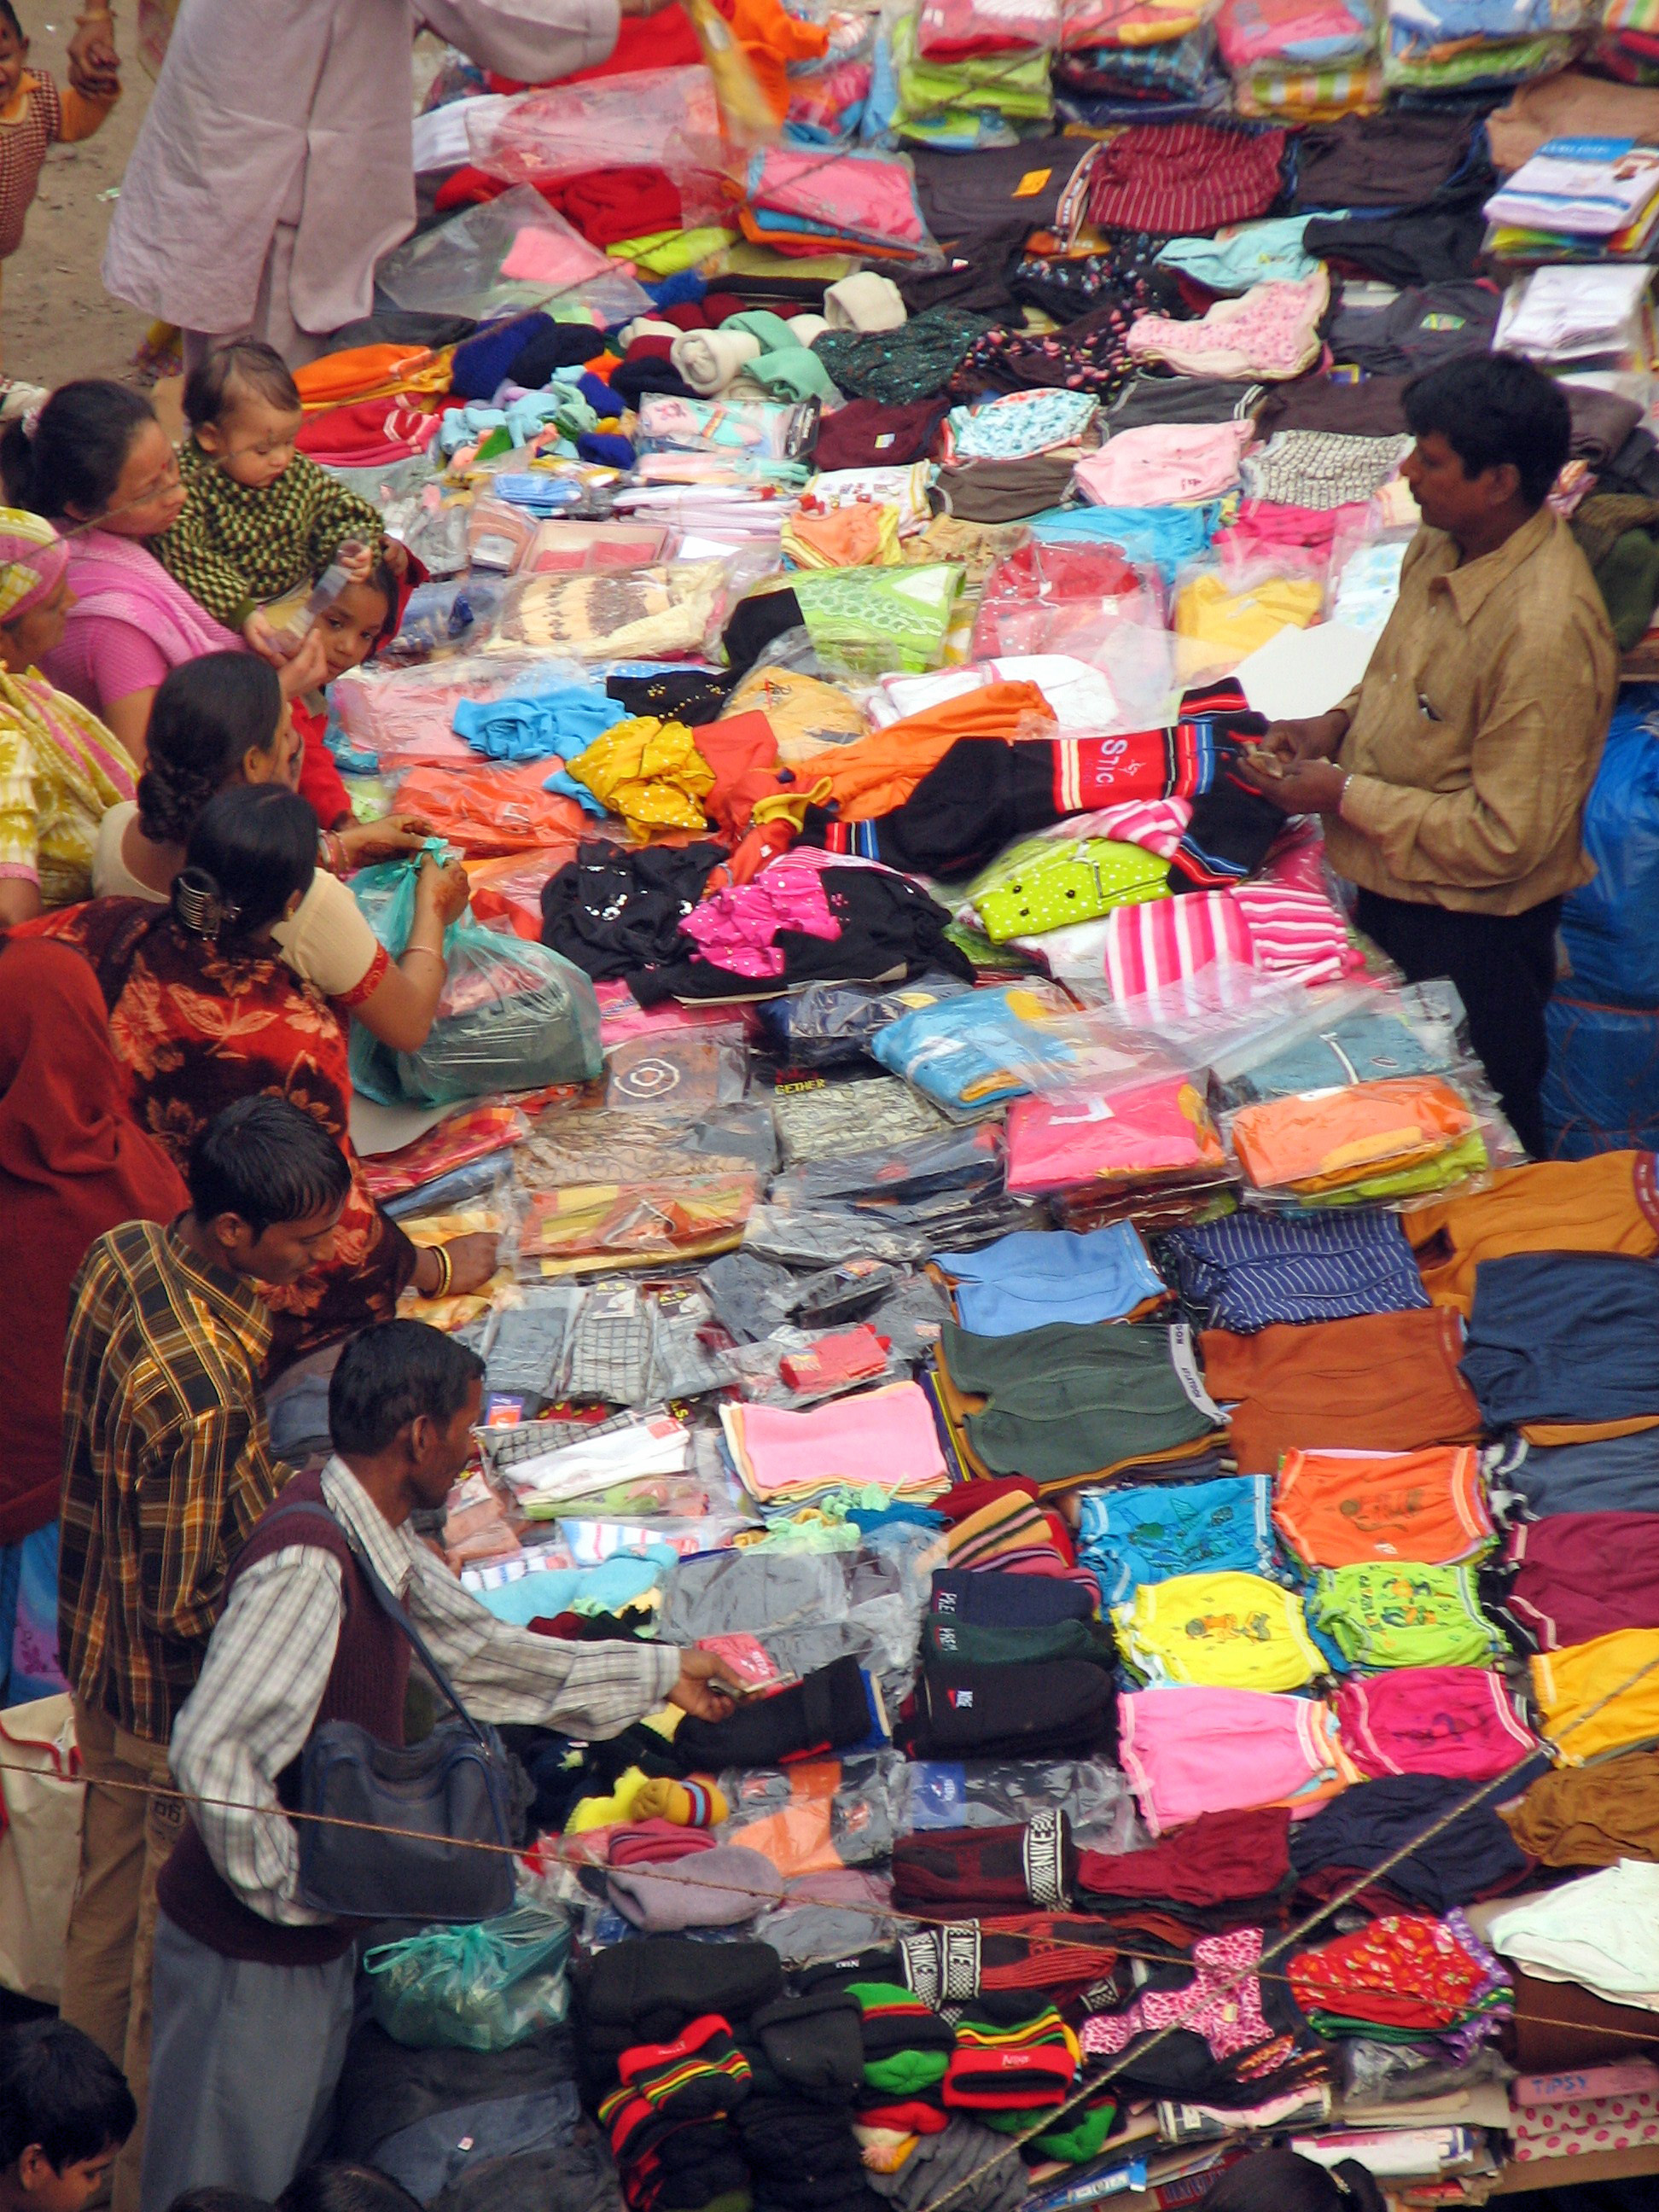 india_-_delhi_-_010_-_clothing_for_sale_2085662693